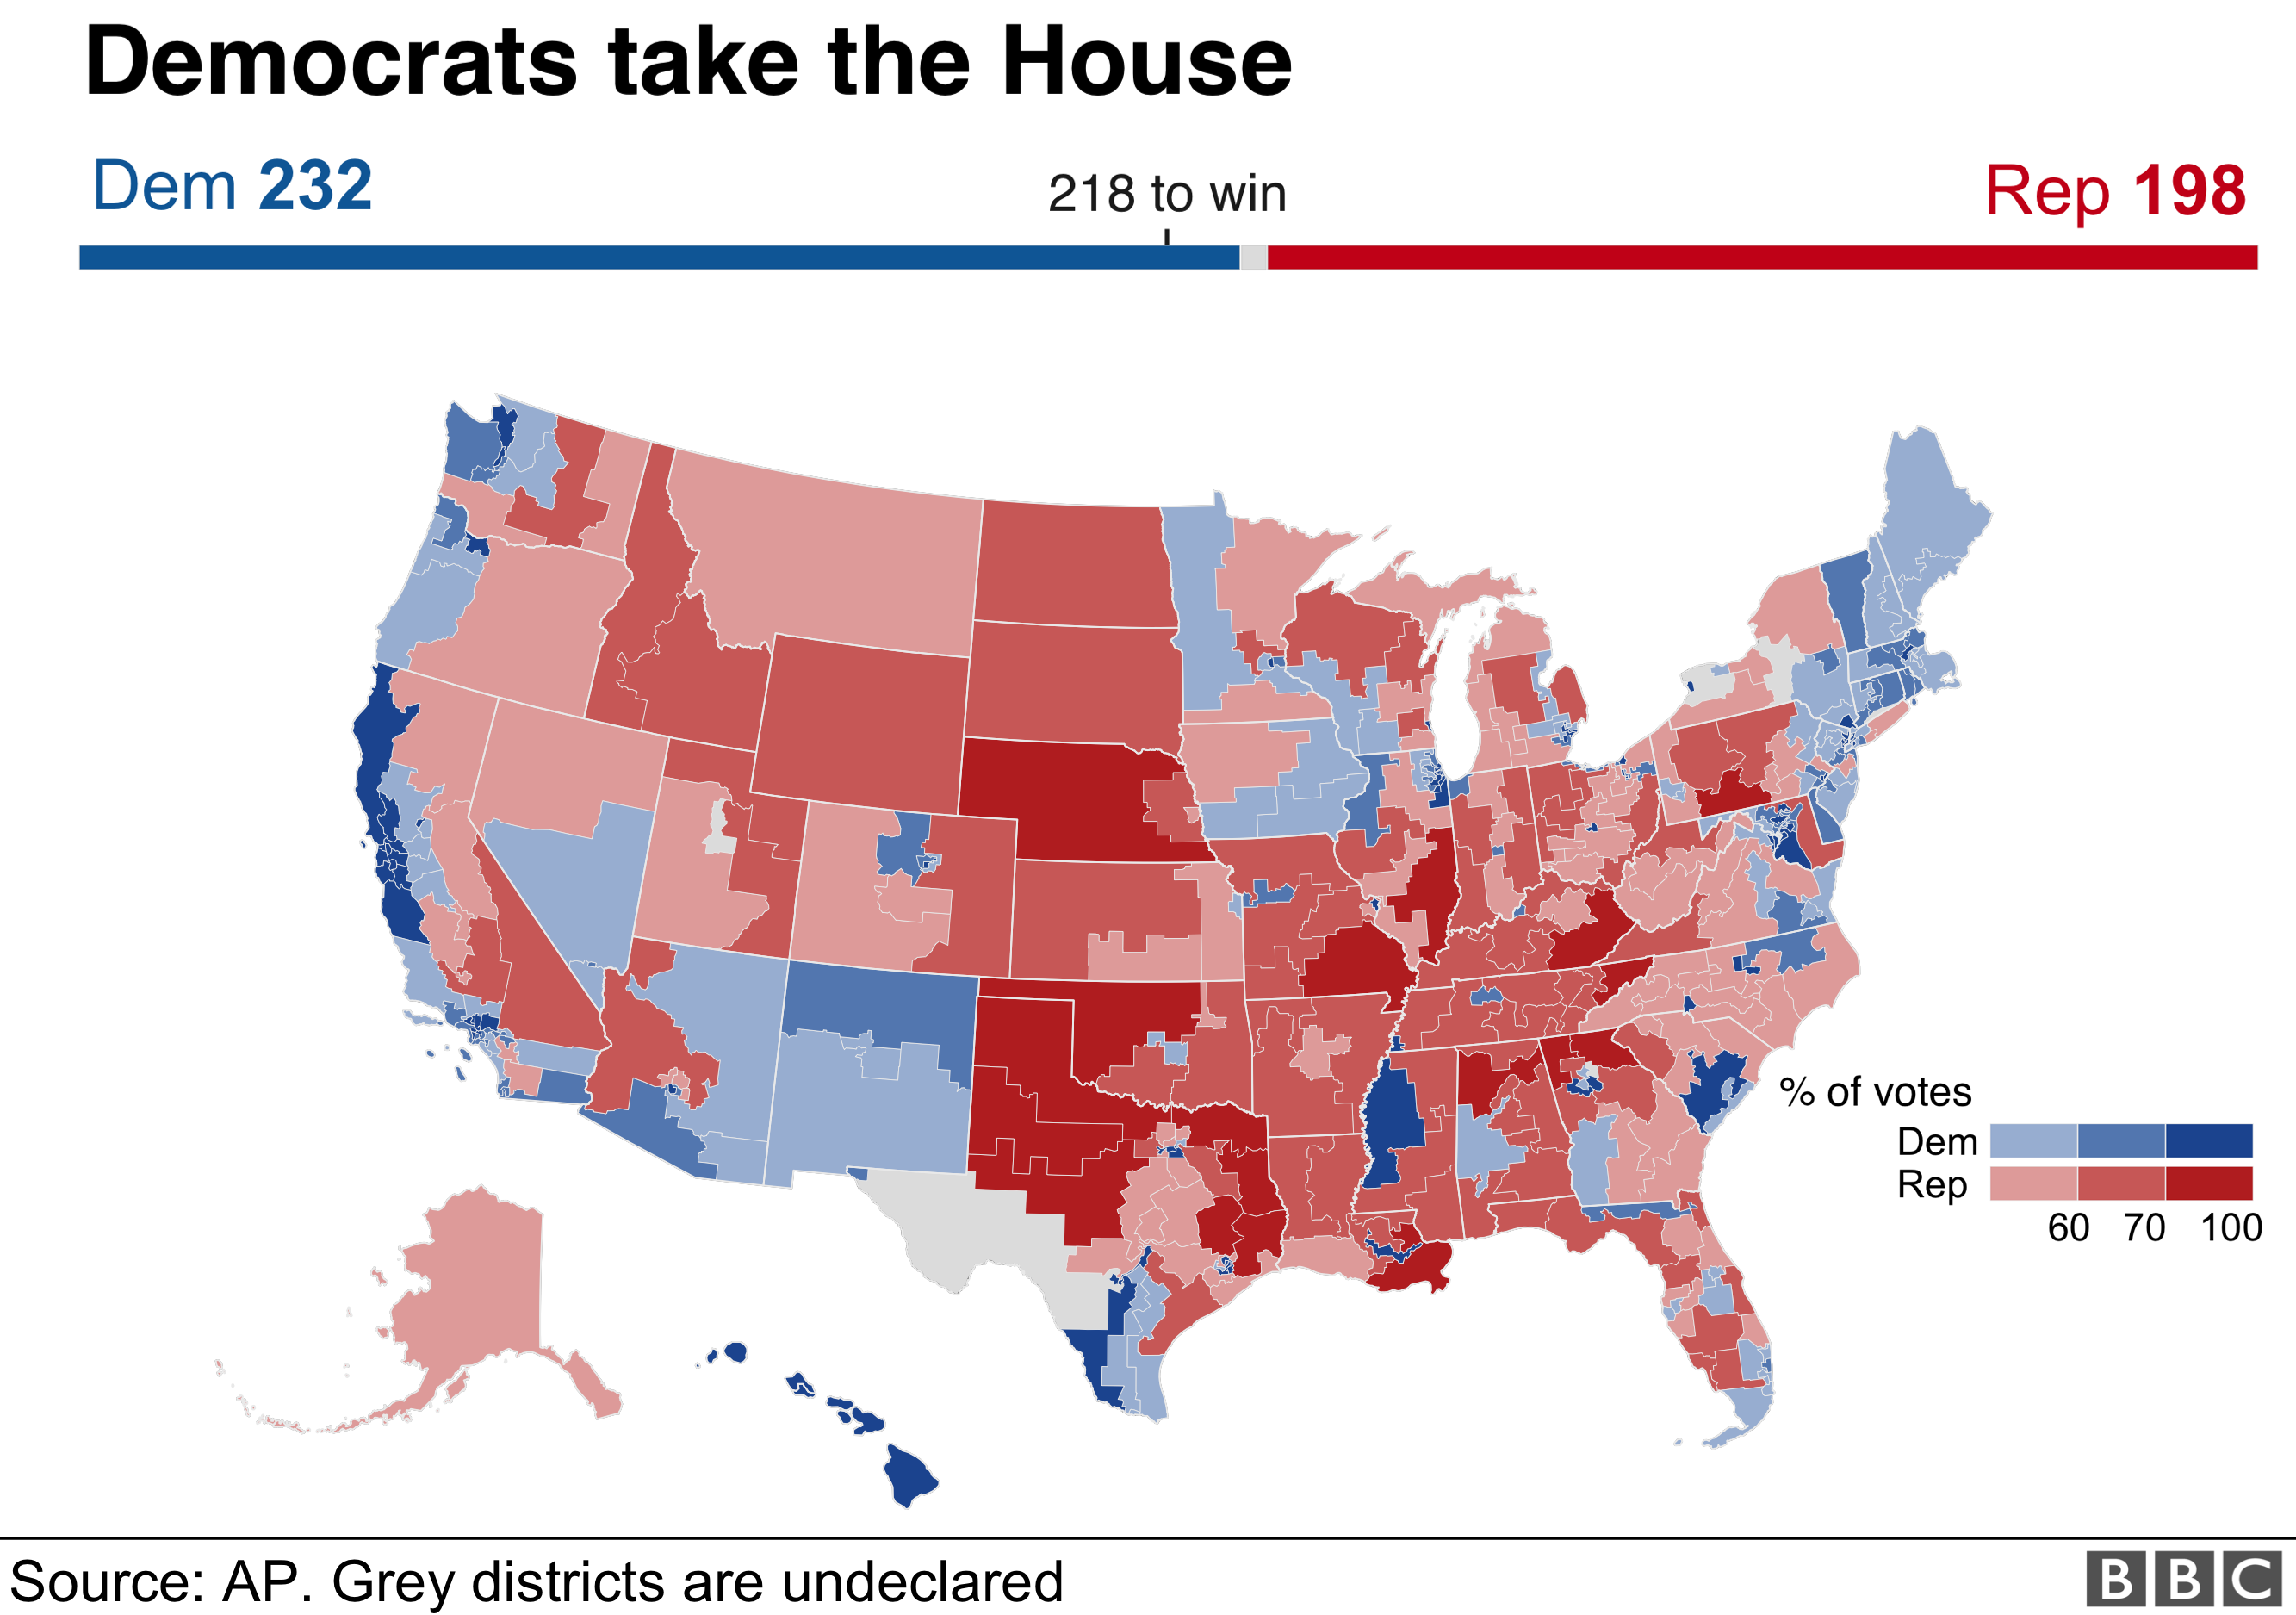 Us Map Democrat Republican States 2016.Us Mid Term Election Results 2018 Maps Charts And Analysis Bbc News